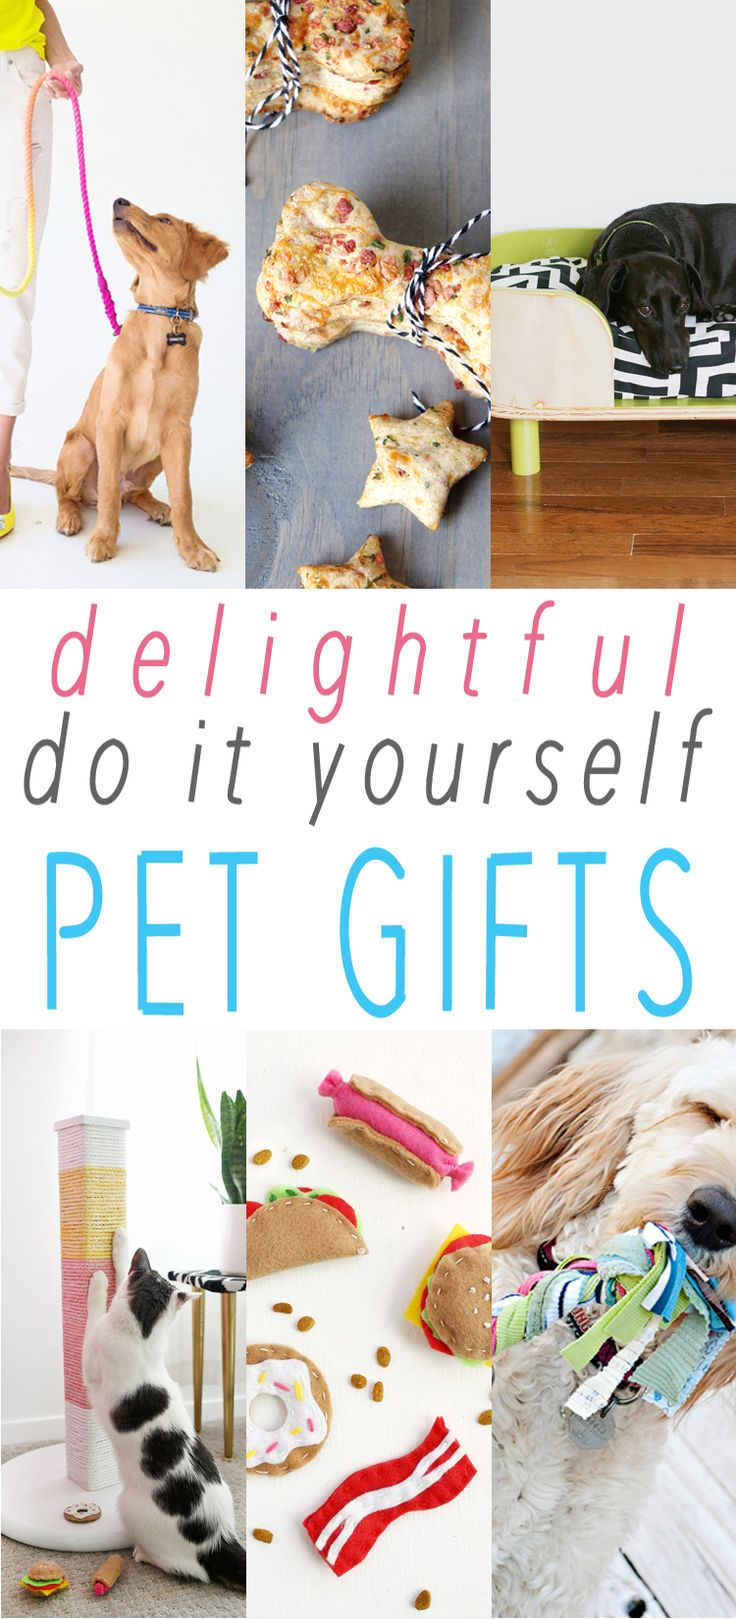 Are you looking for the perfect homemade gift to give a special little pup or kitty?  Well then you are going to really enjoy this collection of DIY Pet Gifts.  You are going to find some yummy and comfy things to bestow upon a very special little furbaby.  Sure hope you enjoy the selection and …